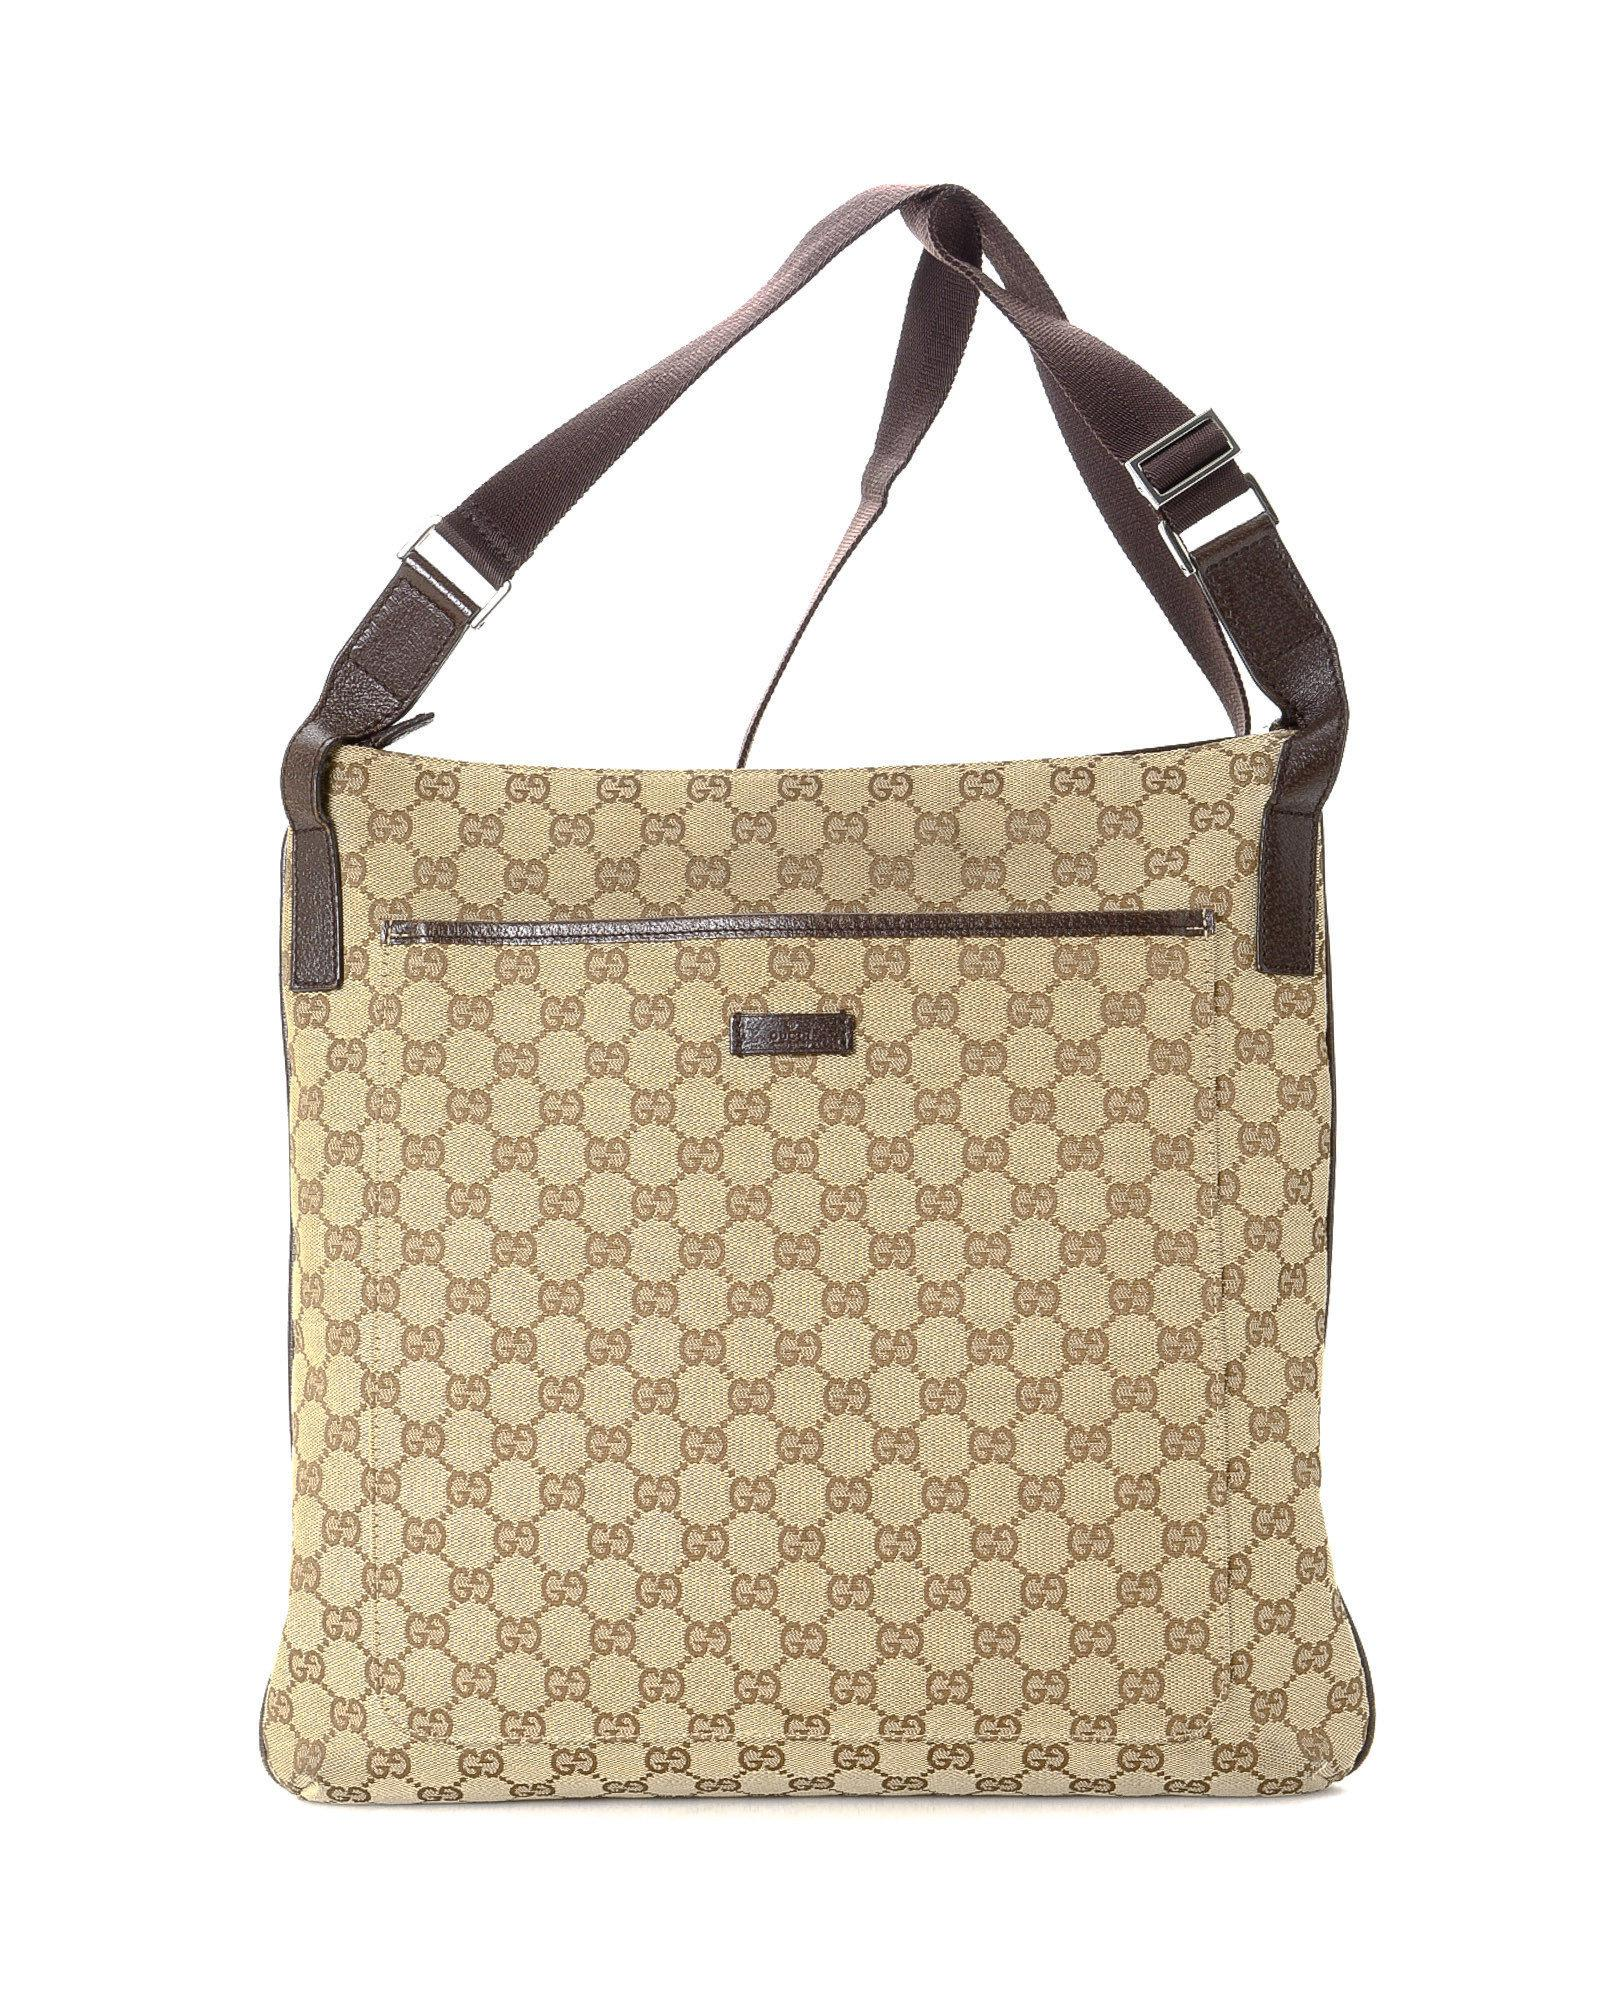 1a73425b7 Gucci Crossbody Bag - Vintage in Natural - Lyst